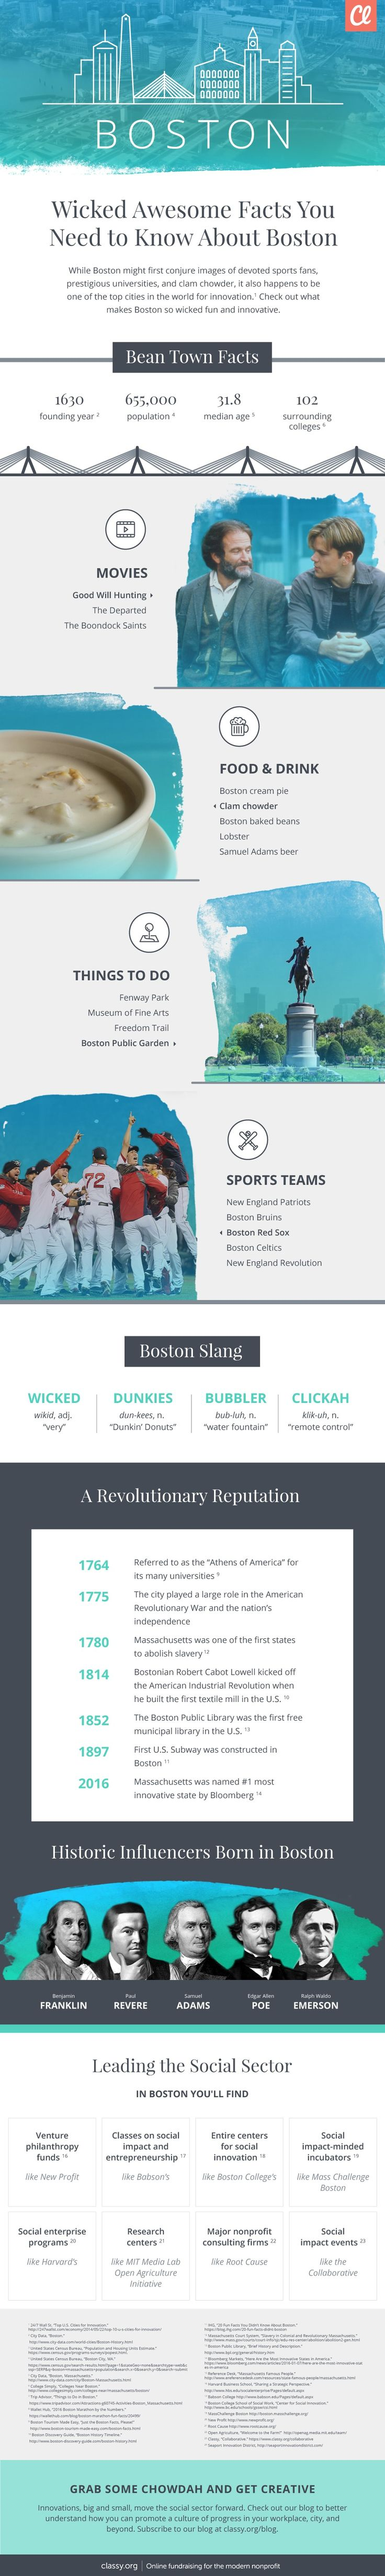 Here are some fun facts about Boston, Massachusetts.